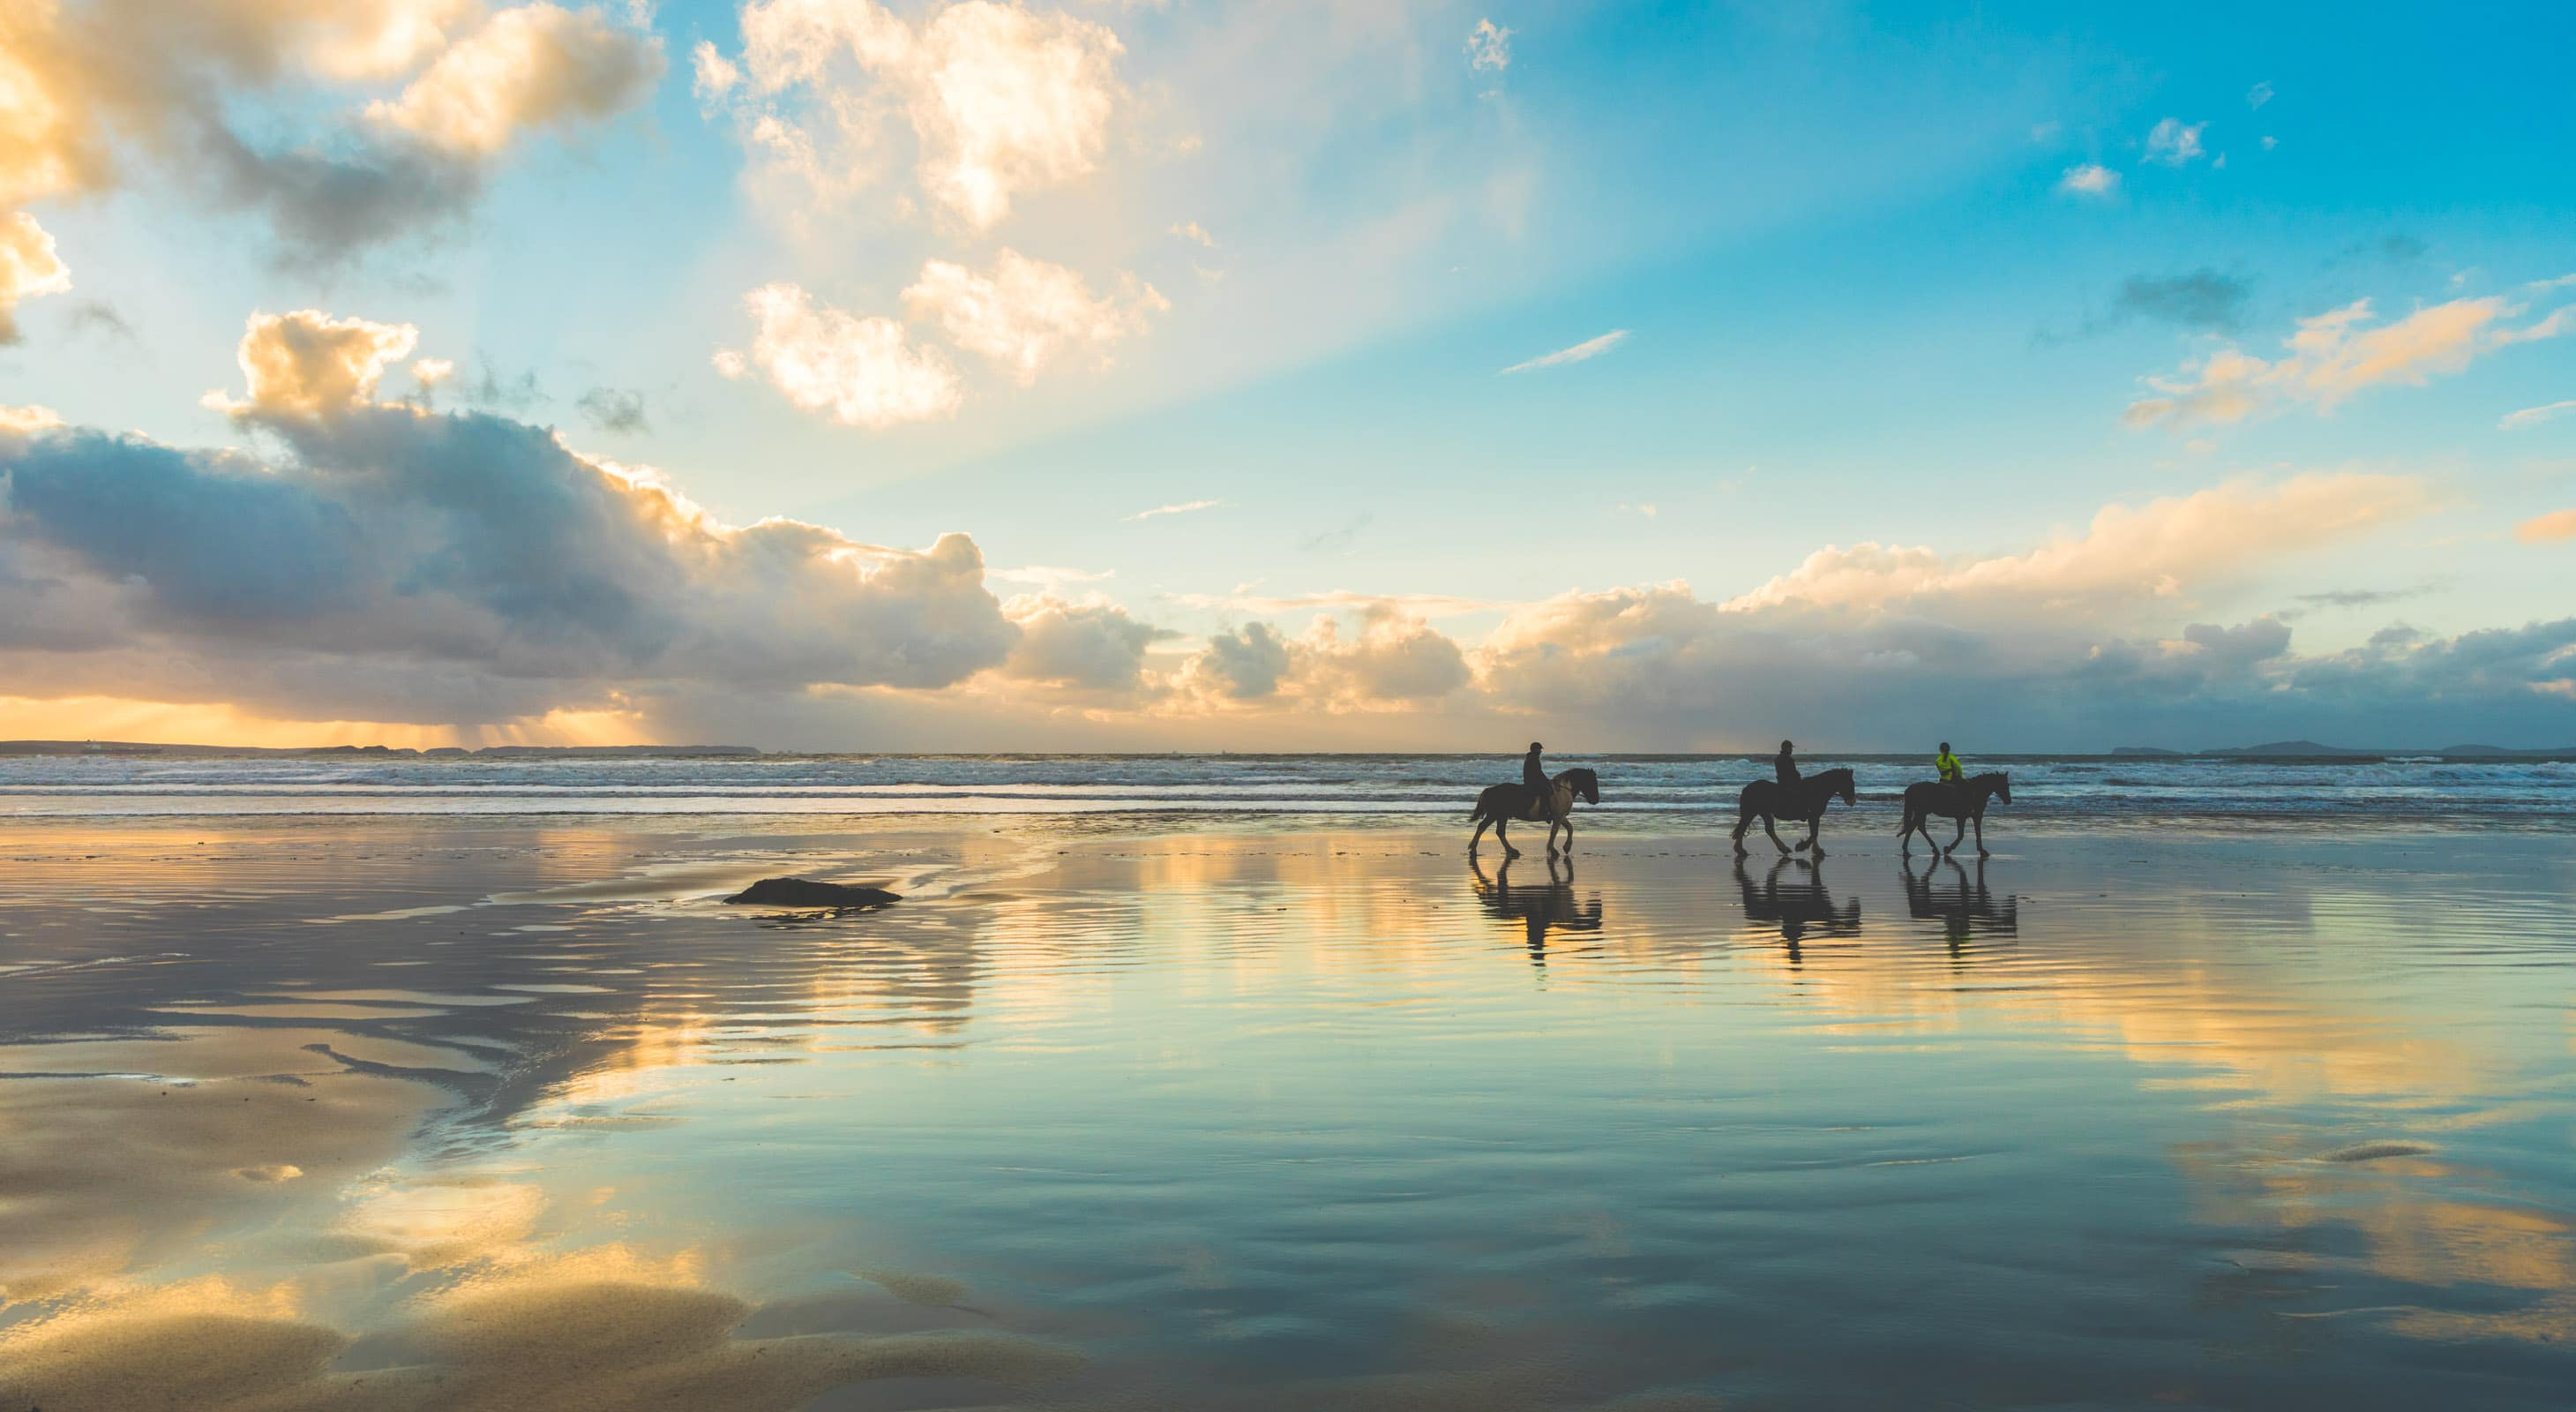 Group riding horseback on the beach at sunset